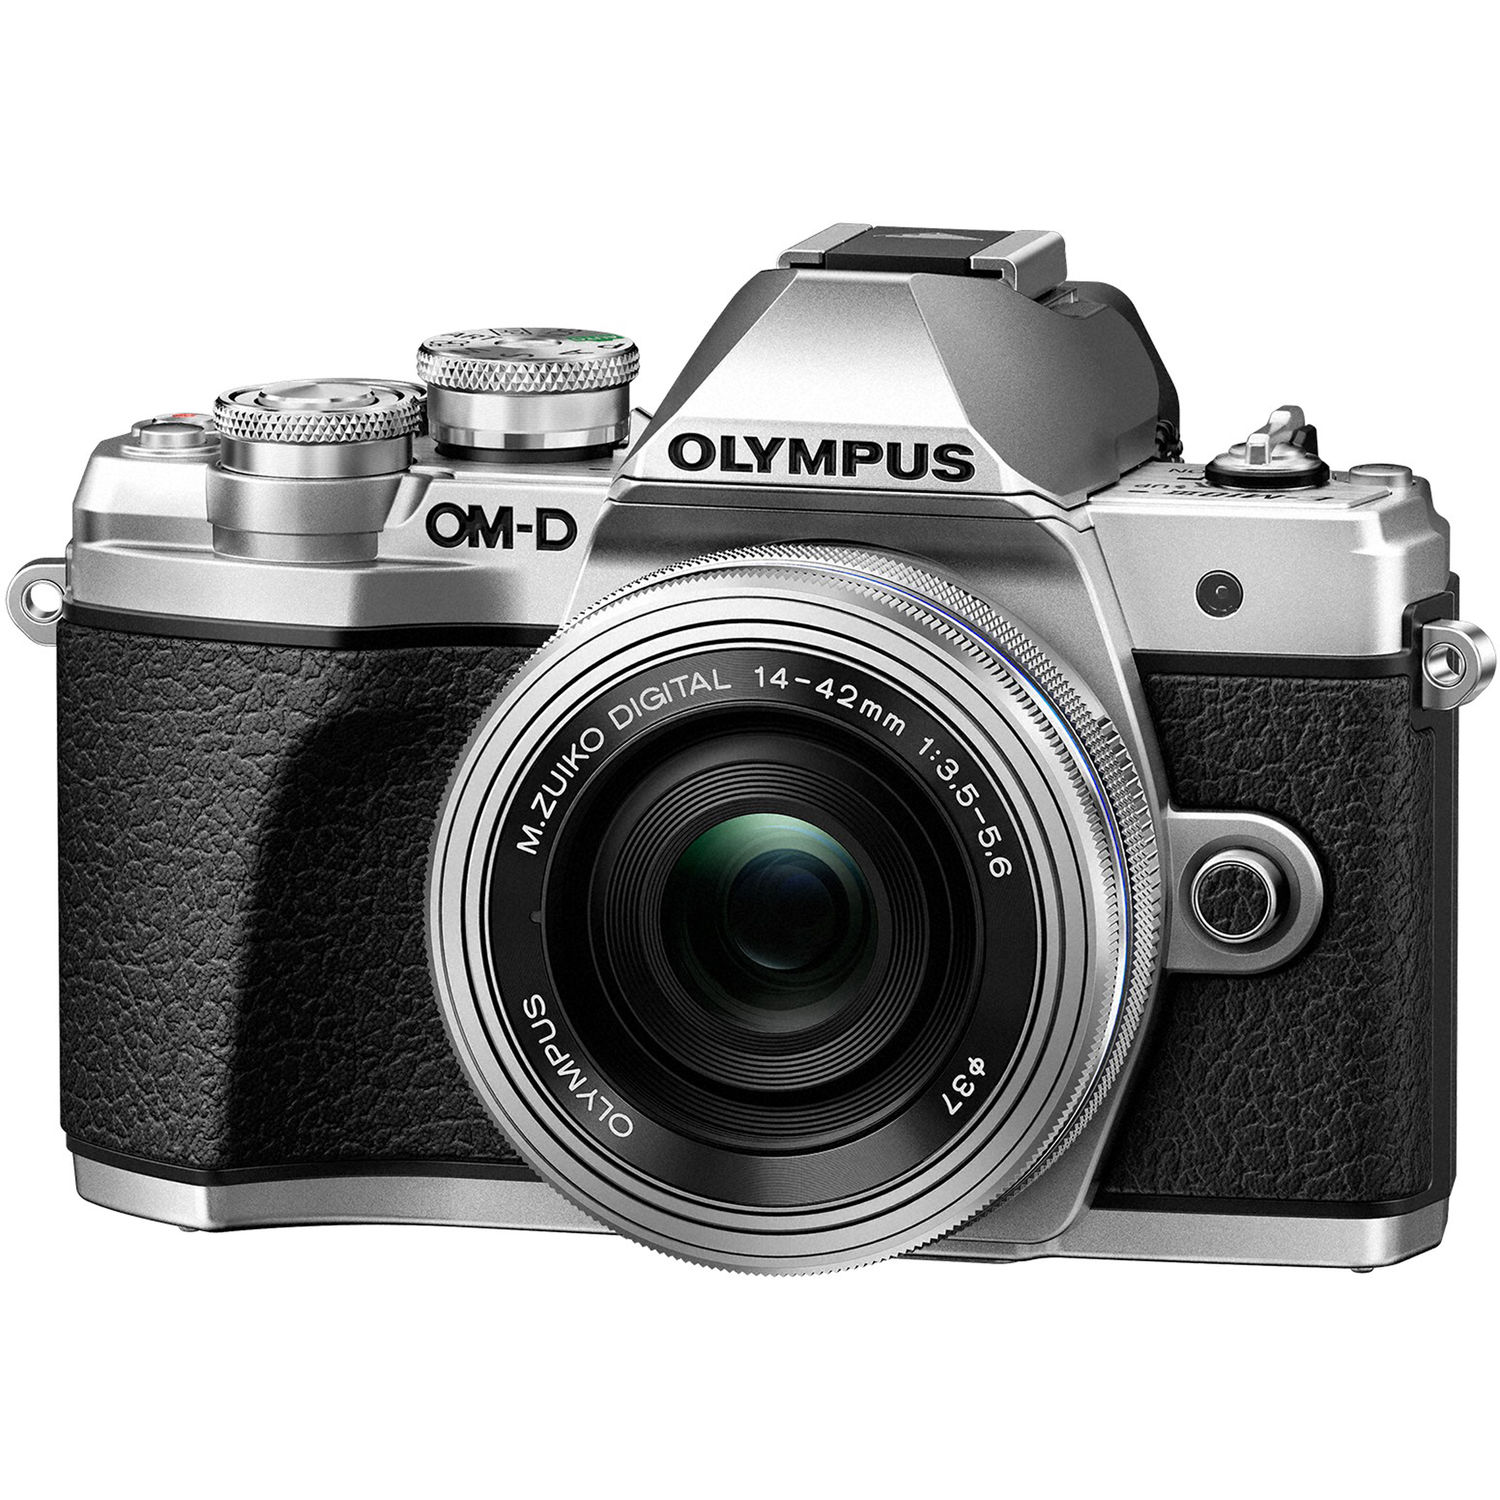 Olympus OM-D E-M10 Mark III Mirrorless  Micro Four Thirds Digital Camera with 14-42mm EZ Lens - Silver